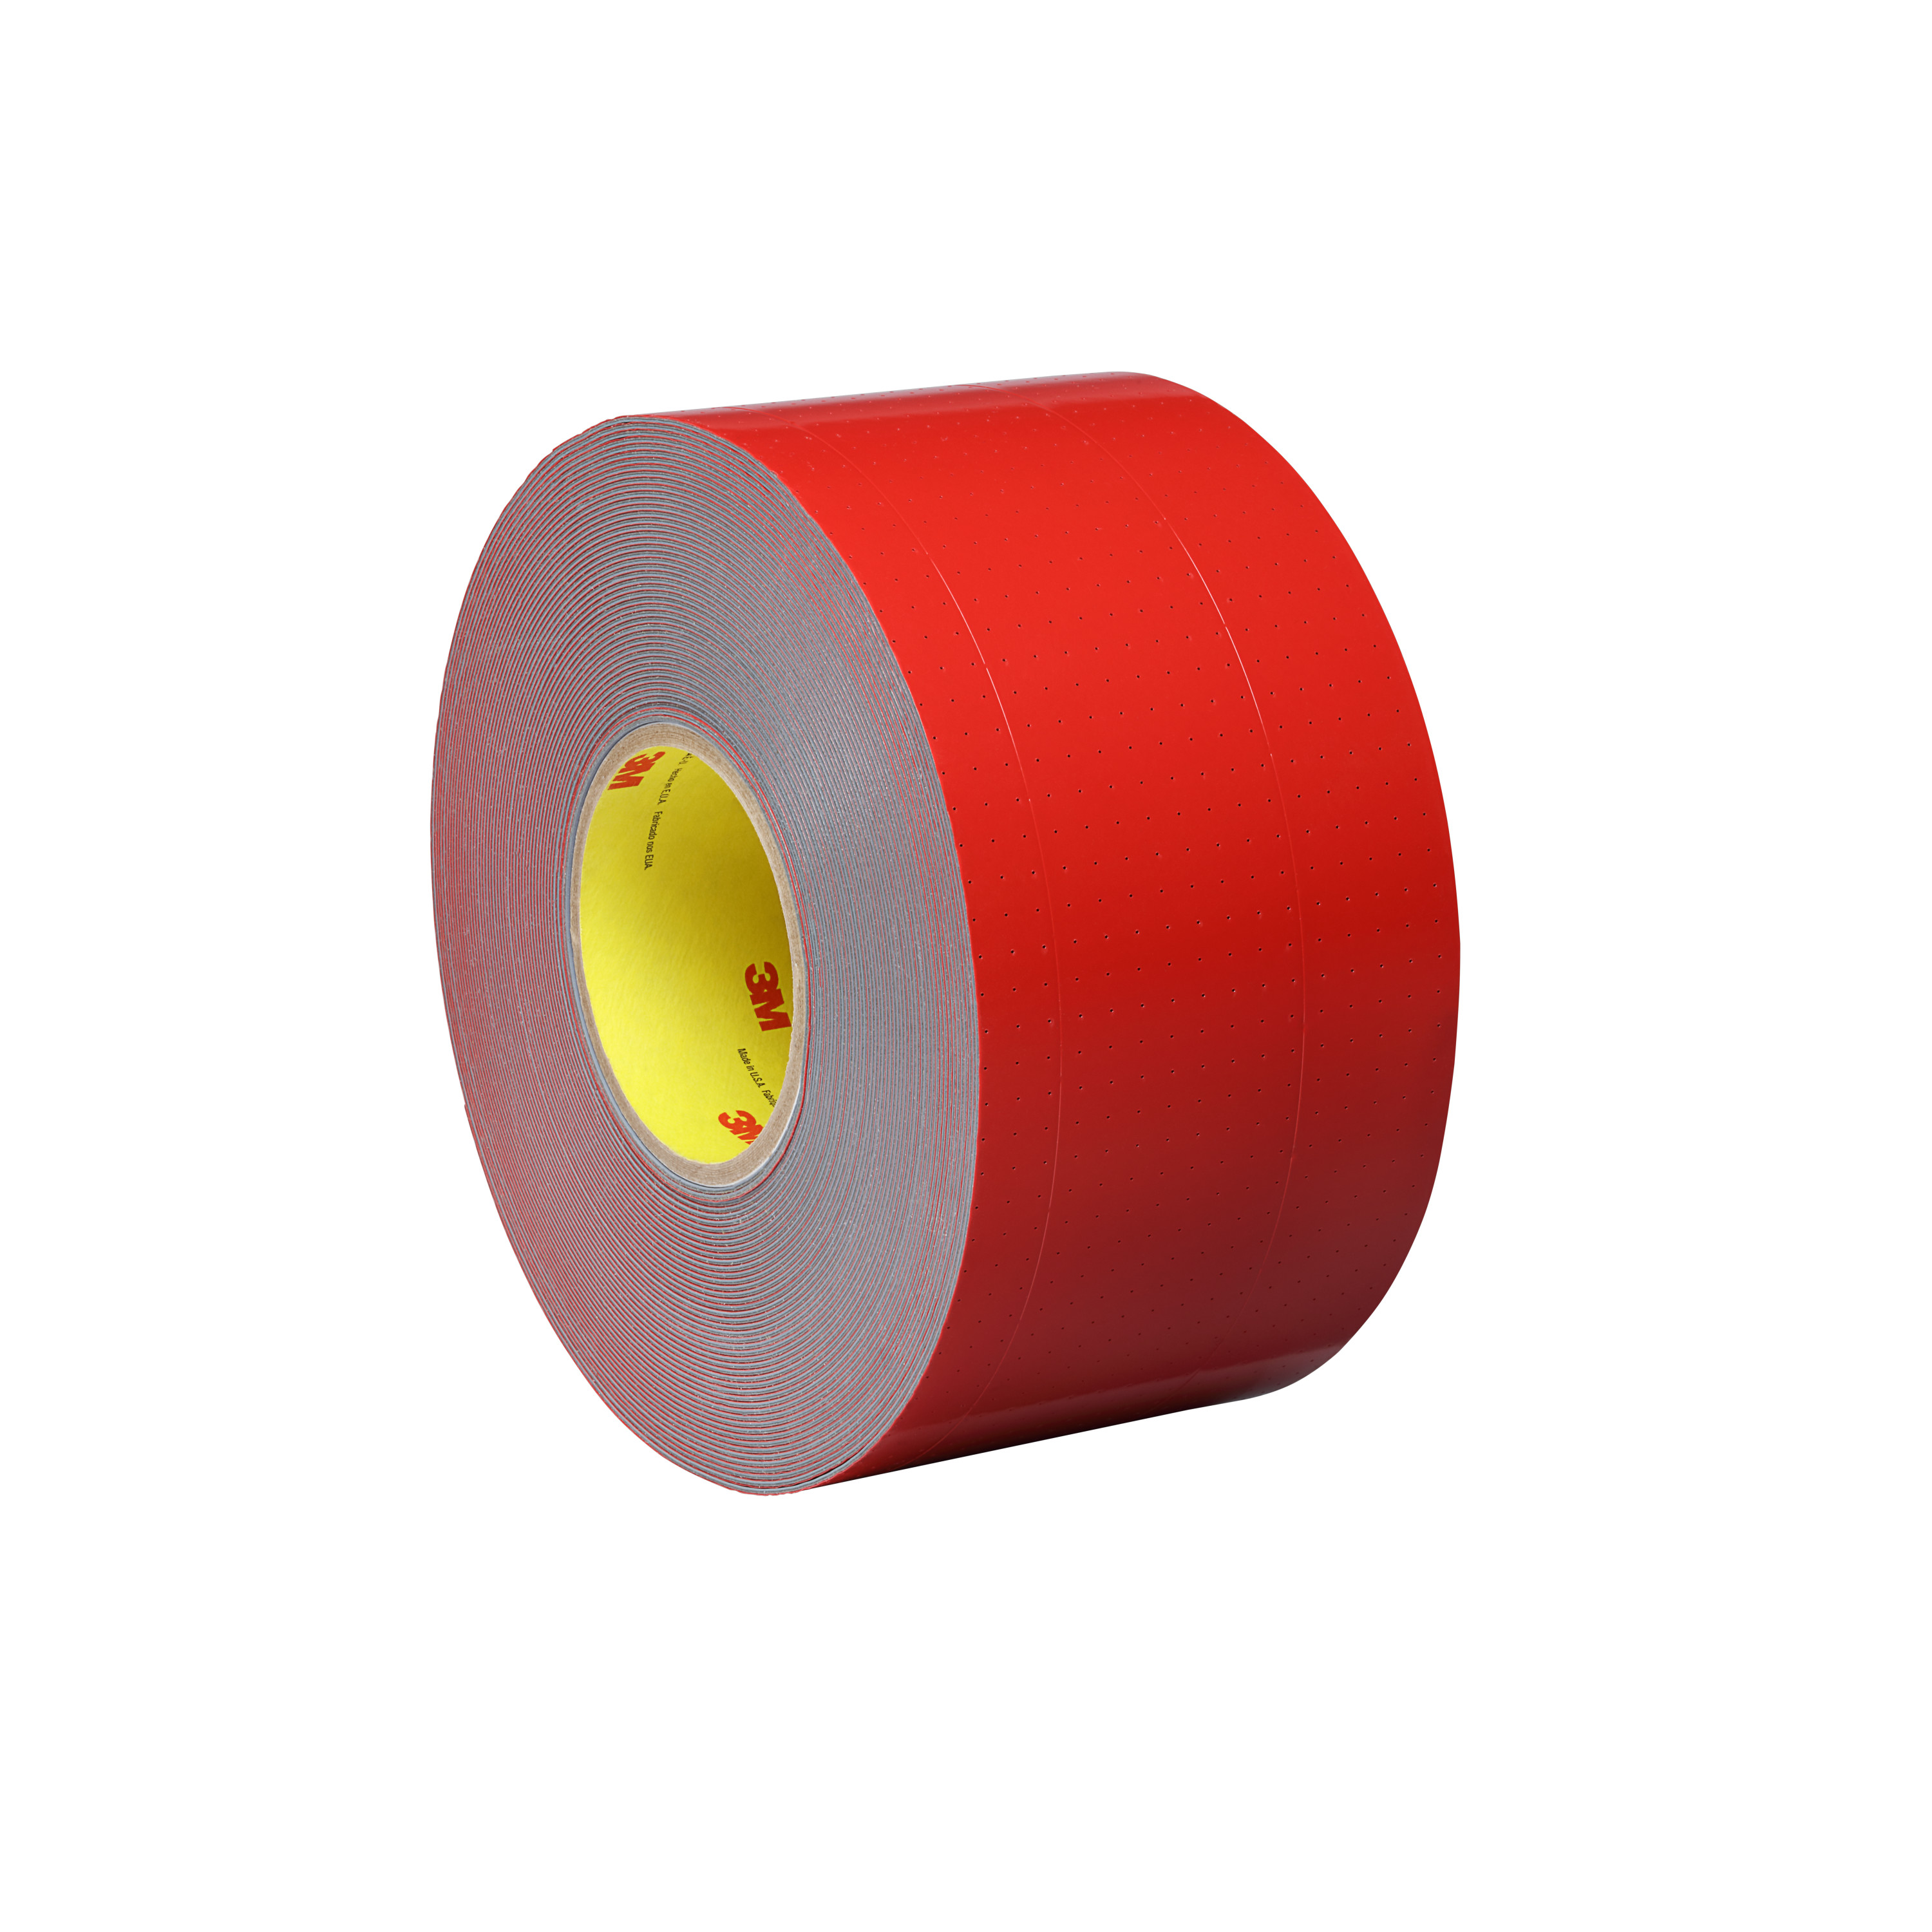 3M™ Polyurethane Protective Tape 8641, 36173, Medium Dark Gray, Non-Perforated Skip Slit Liner, 12 in x 24 in, 1 Roll/Case